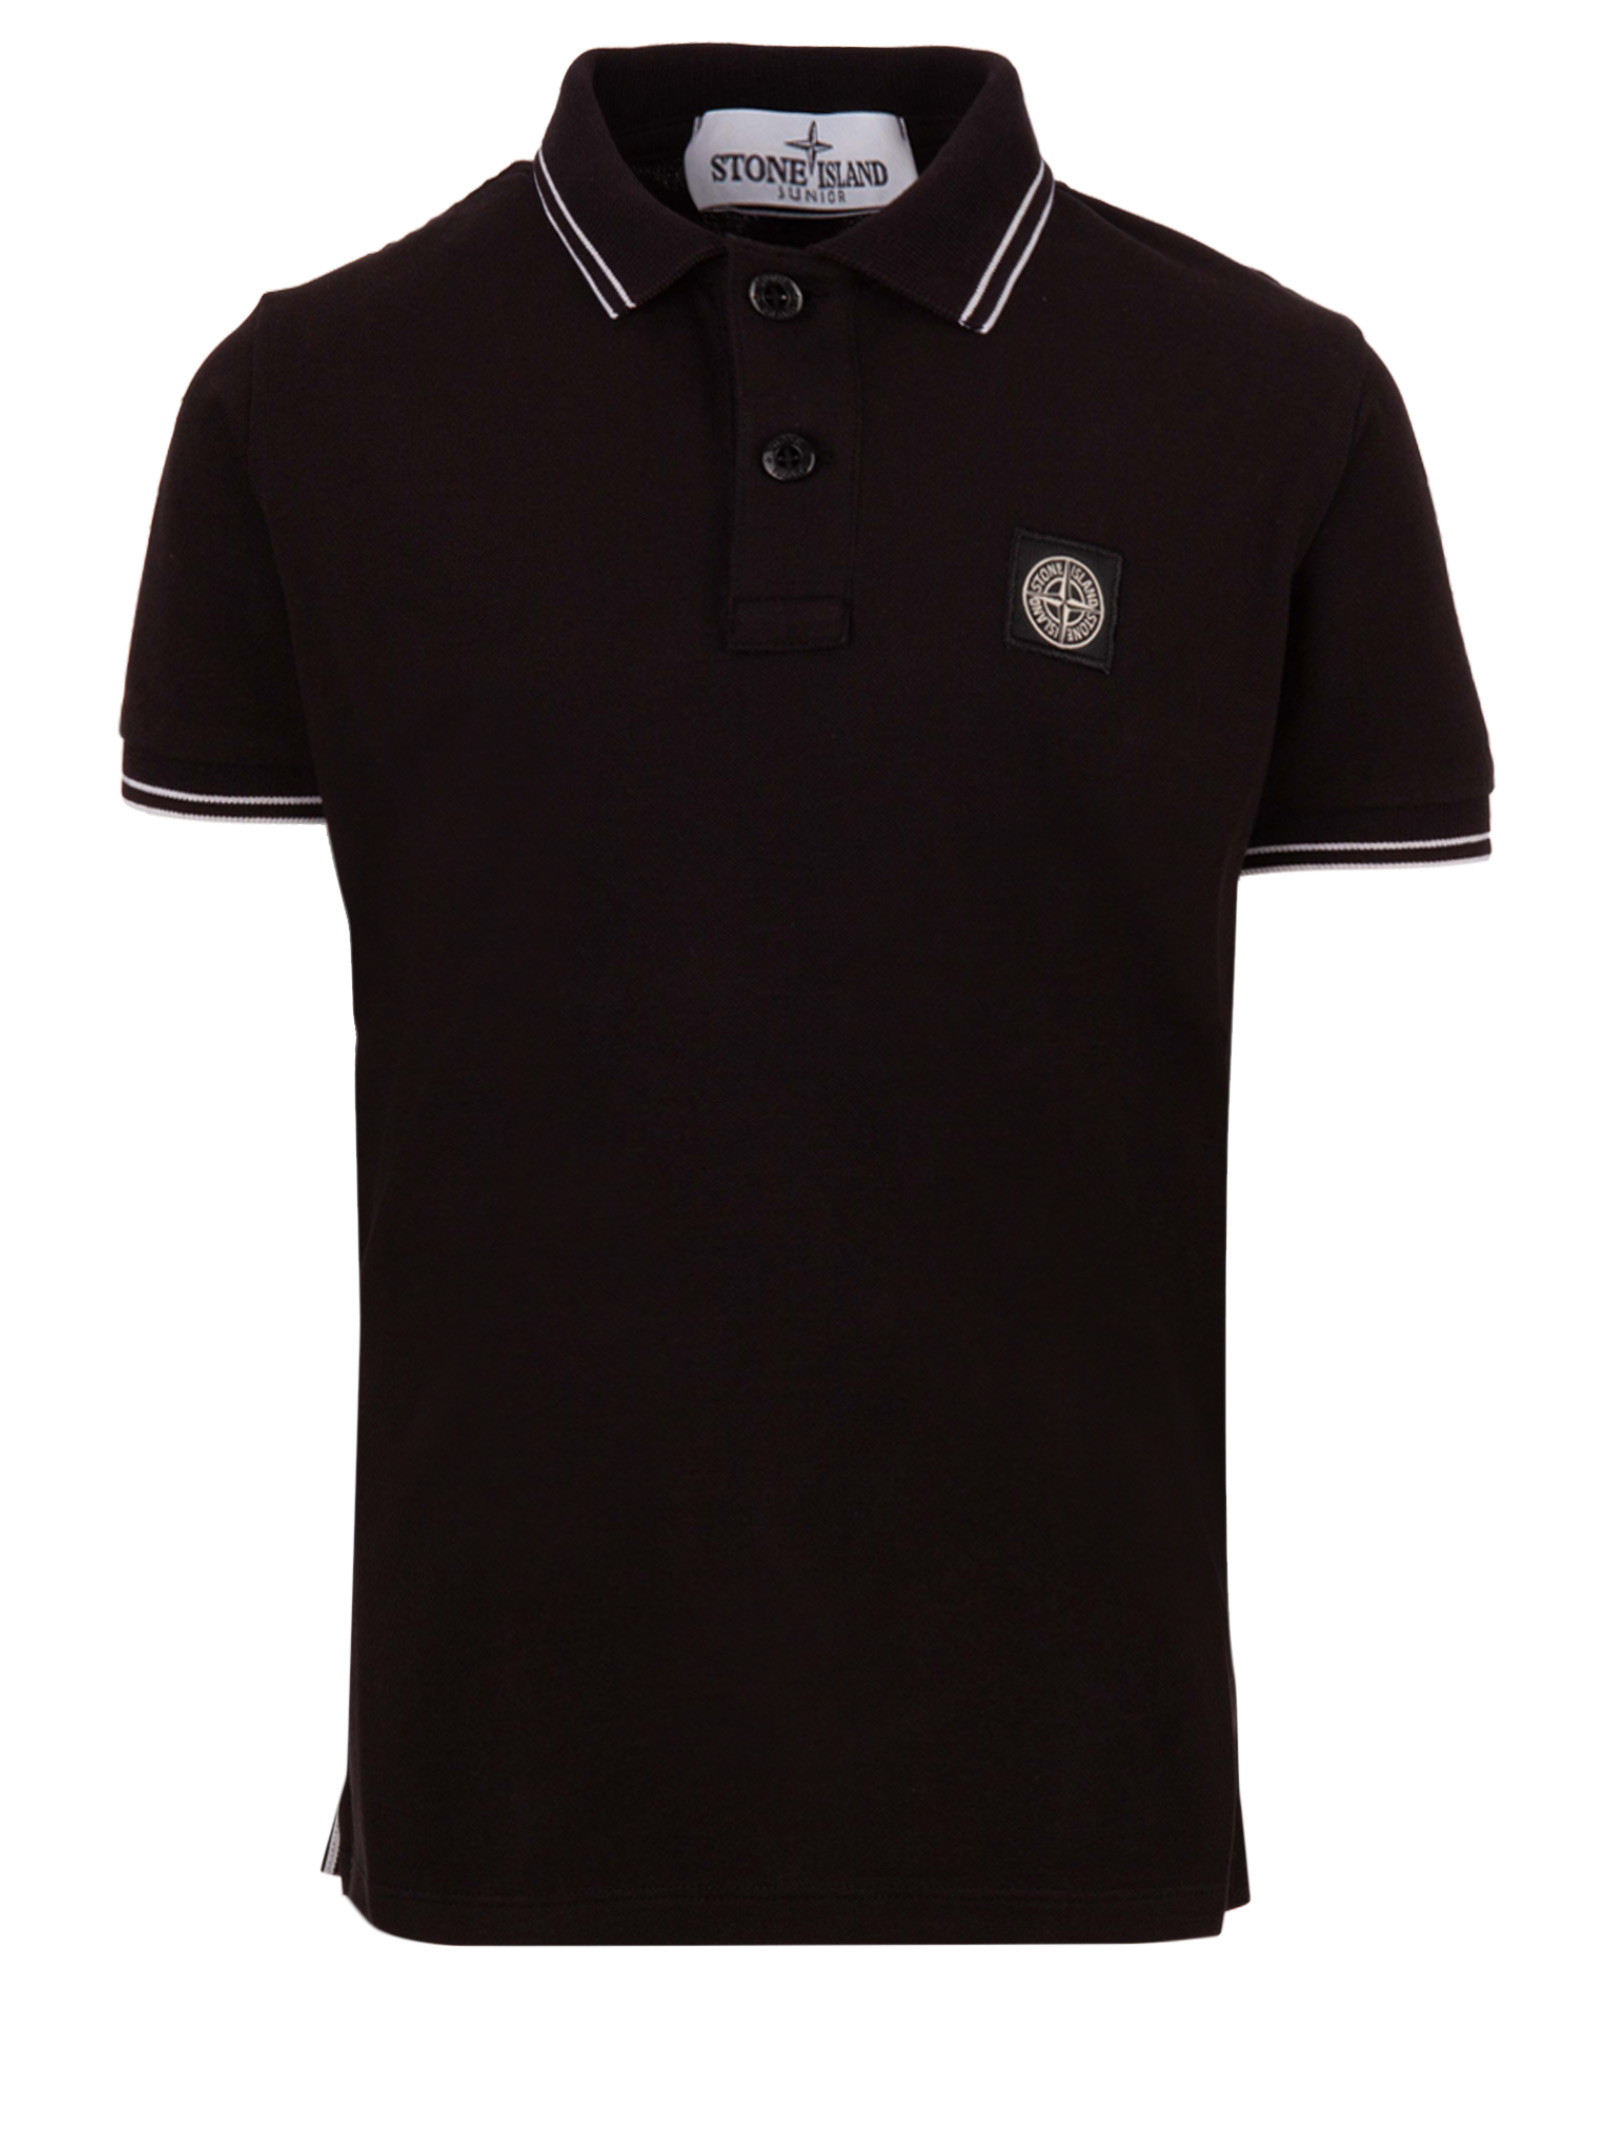 c1aa7ba7423 Stone Island Kids polo shirt - Stone Island Junior - Michele ...